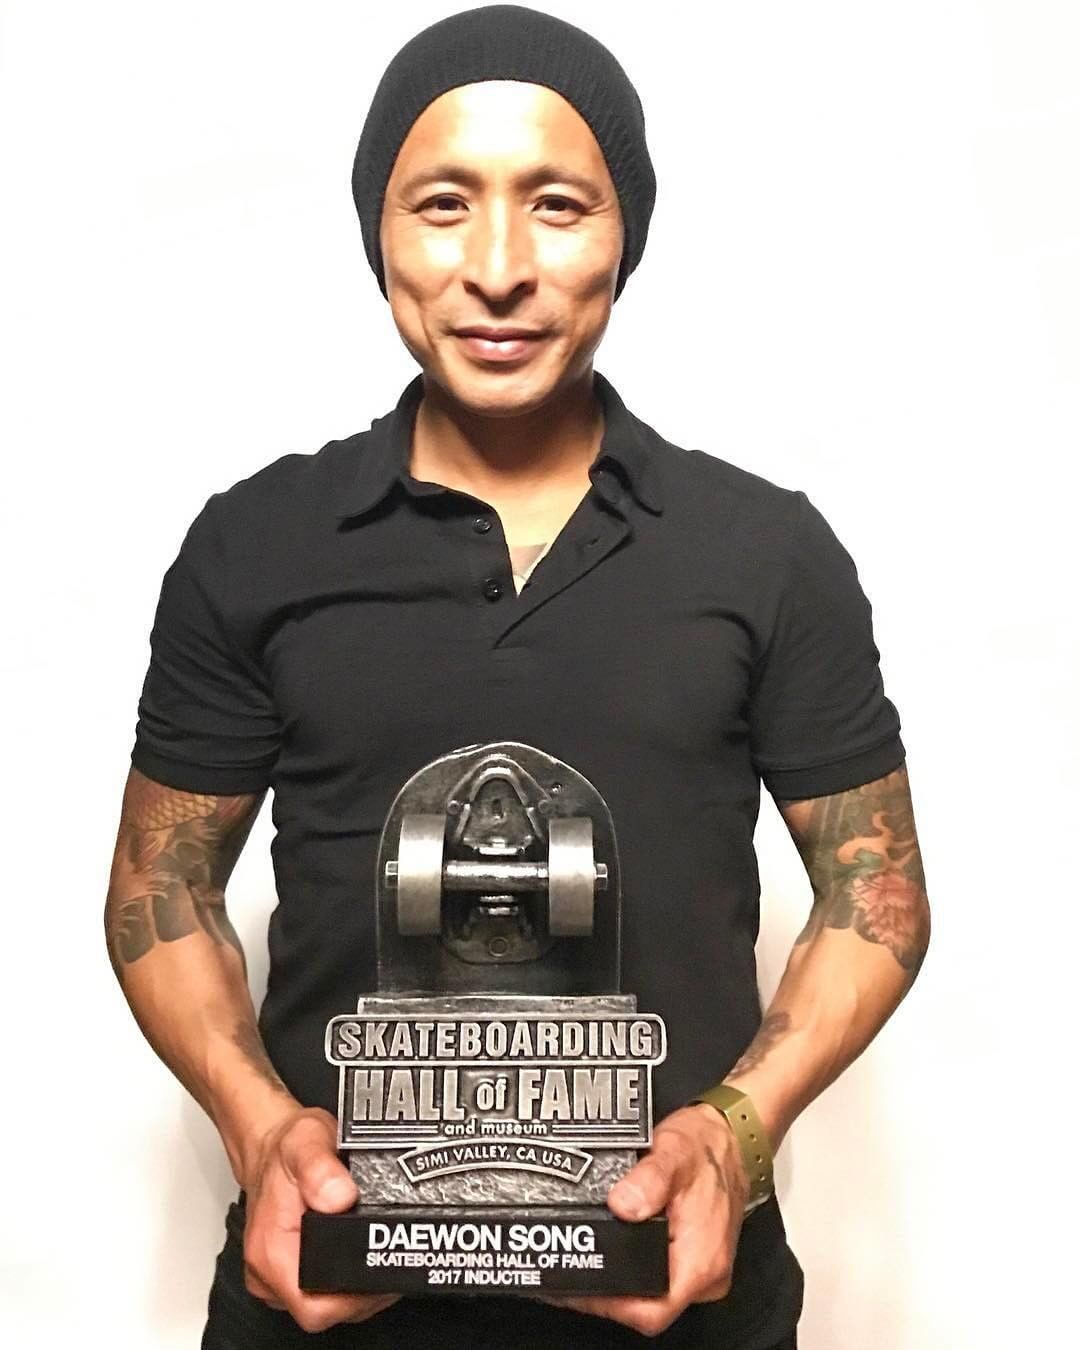 18514076 429867774060150 4199196530390859776 n - We are so happy to hear that @daewon1song was inducted in the @skateboardinghall...